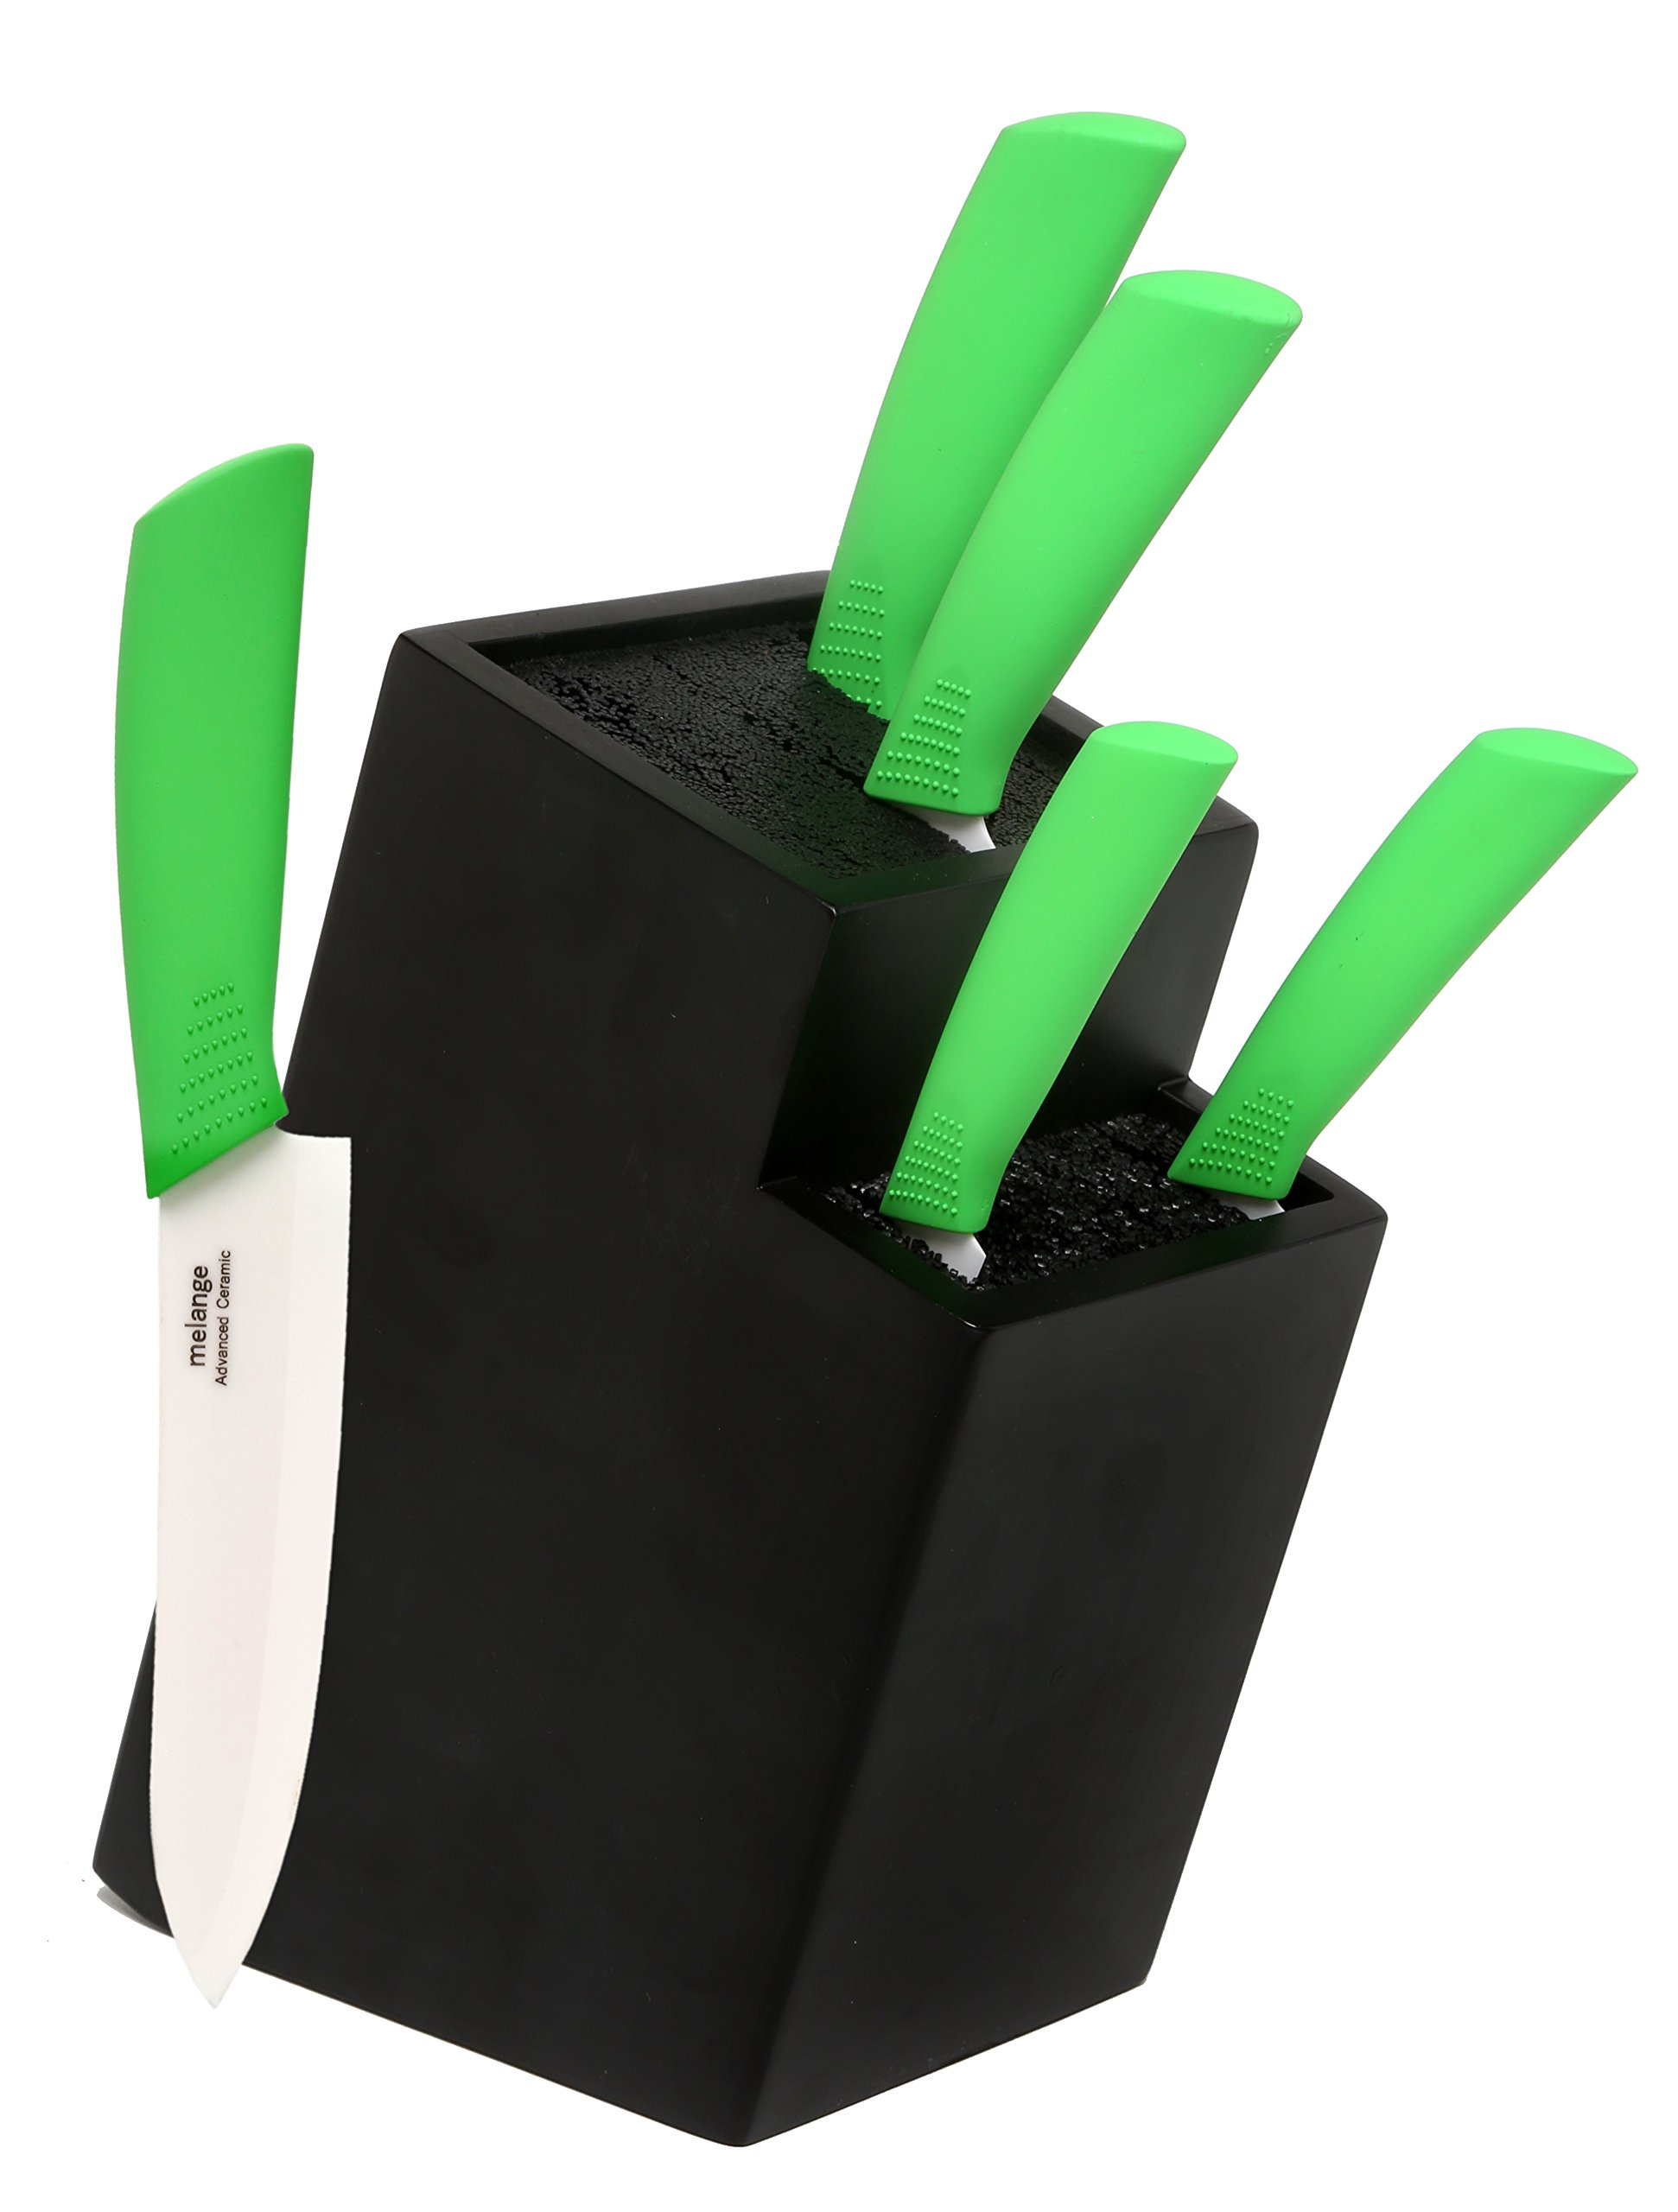 Melange 6-Piece Lime Handle and White Blade Ceramic Knife Set with 2-Tier Black Wood Universal Knife Block